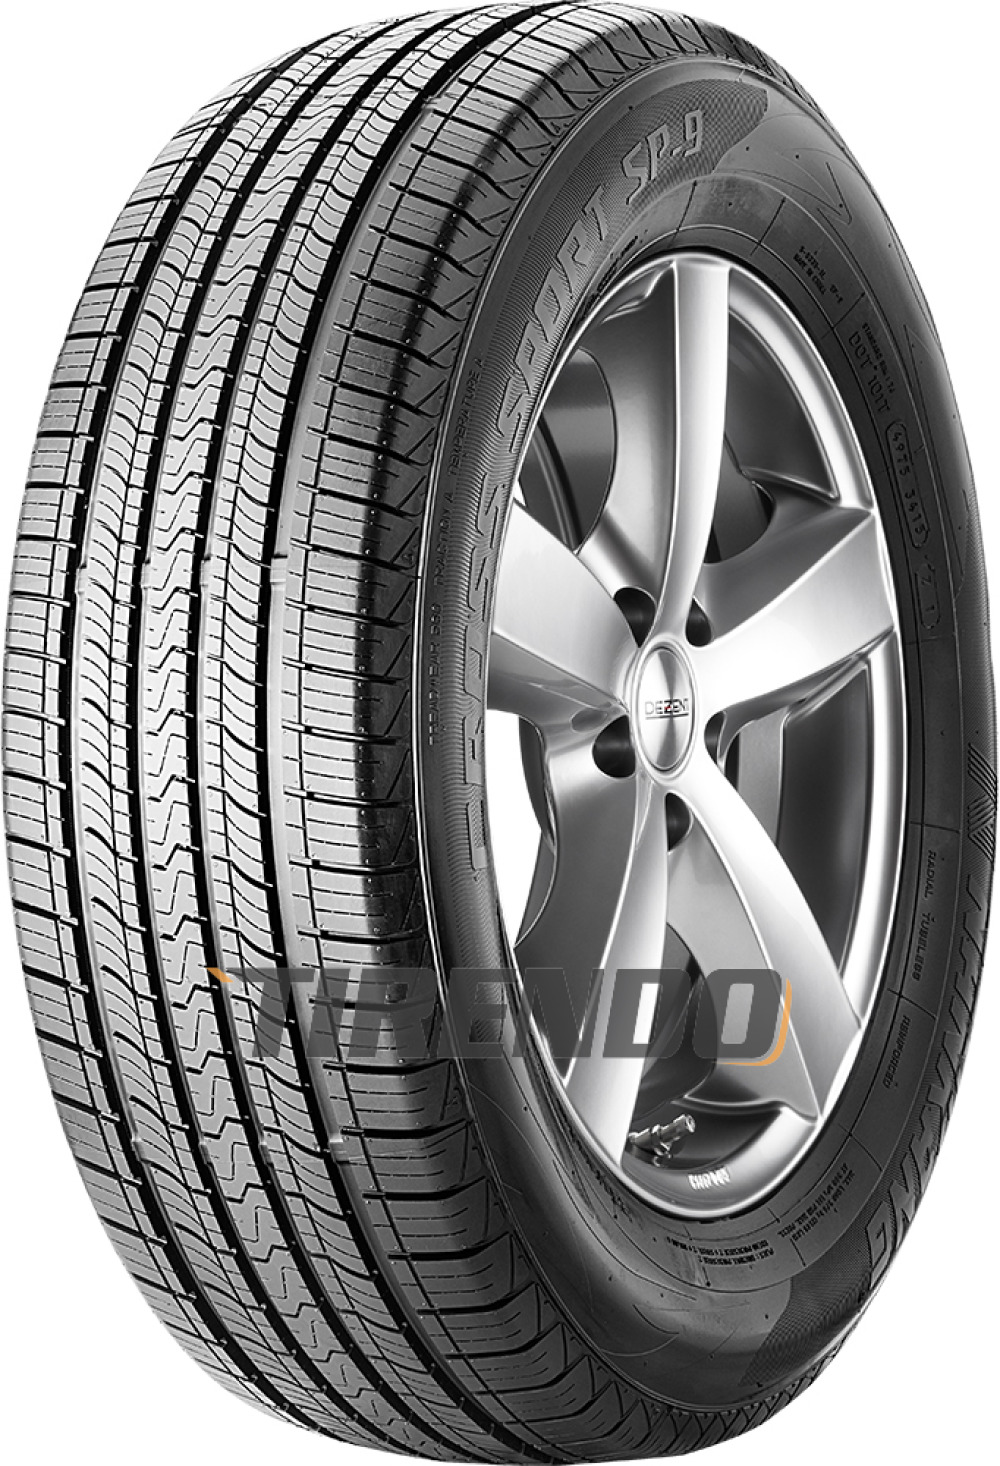 Nankang Cross Sport SP-9 ( 235/50 R18 101V XL )